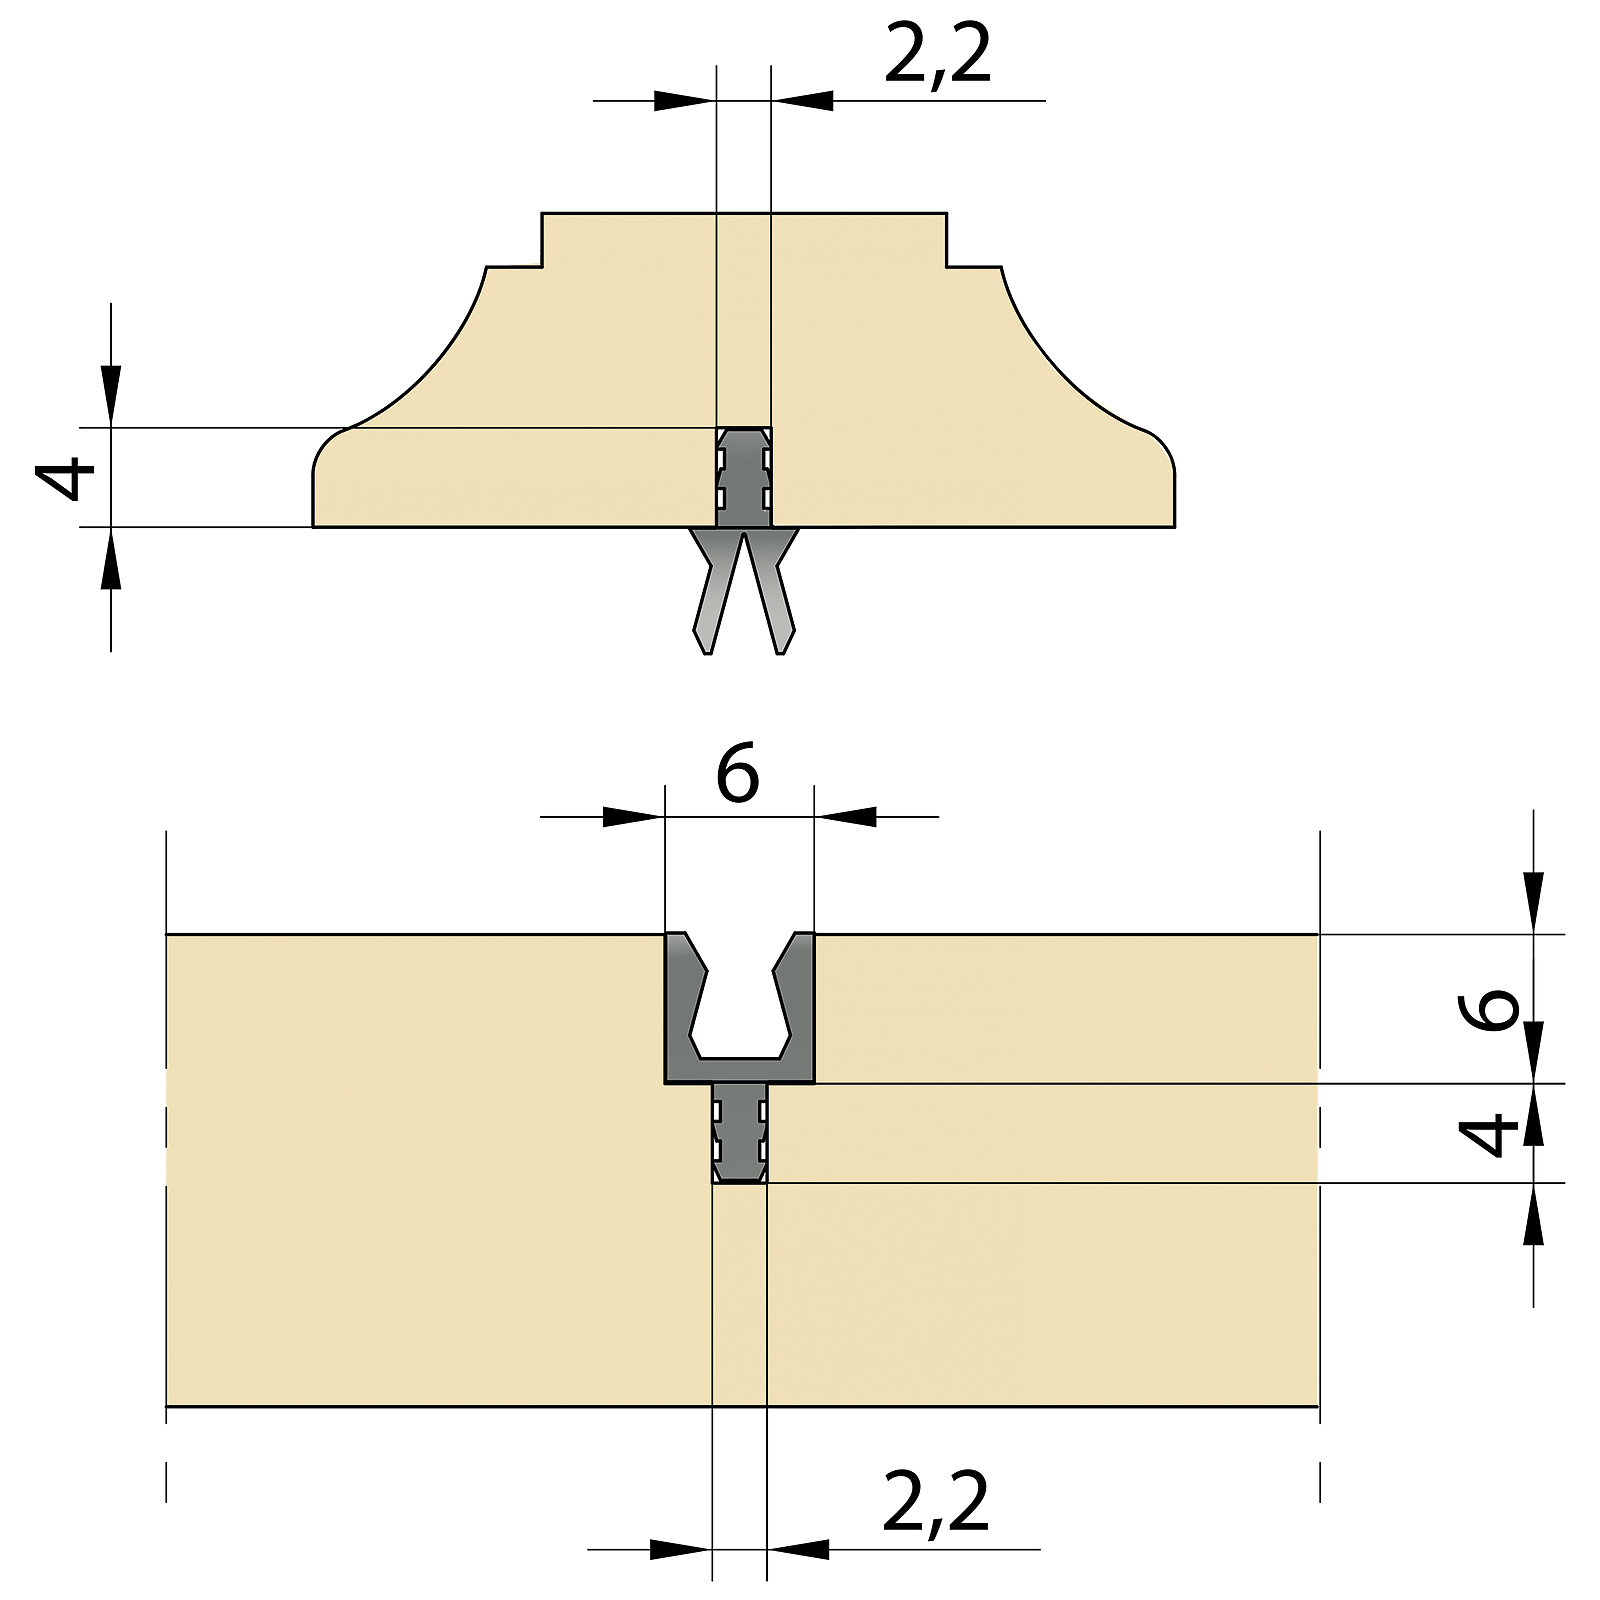 miniKLICK - Dovetail Connector